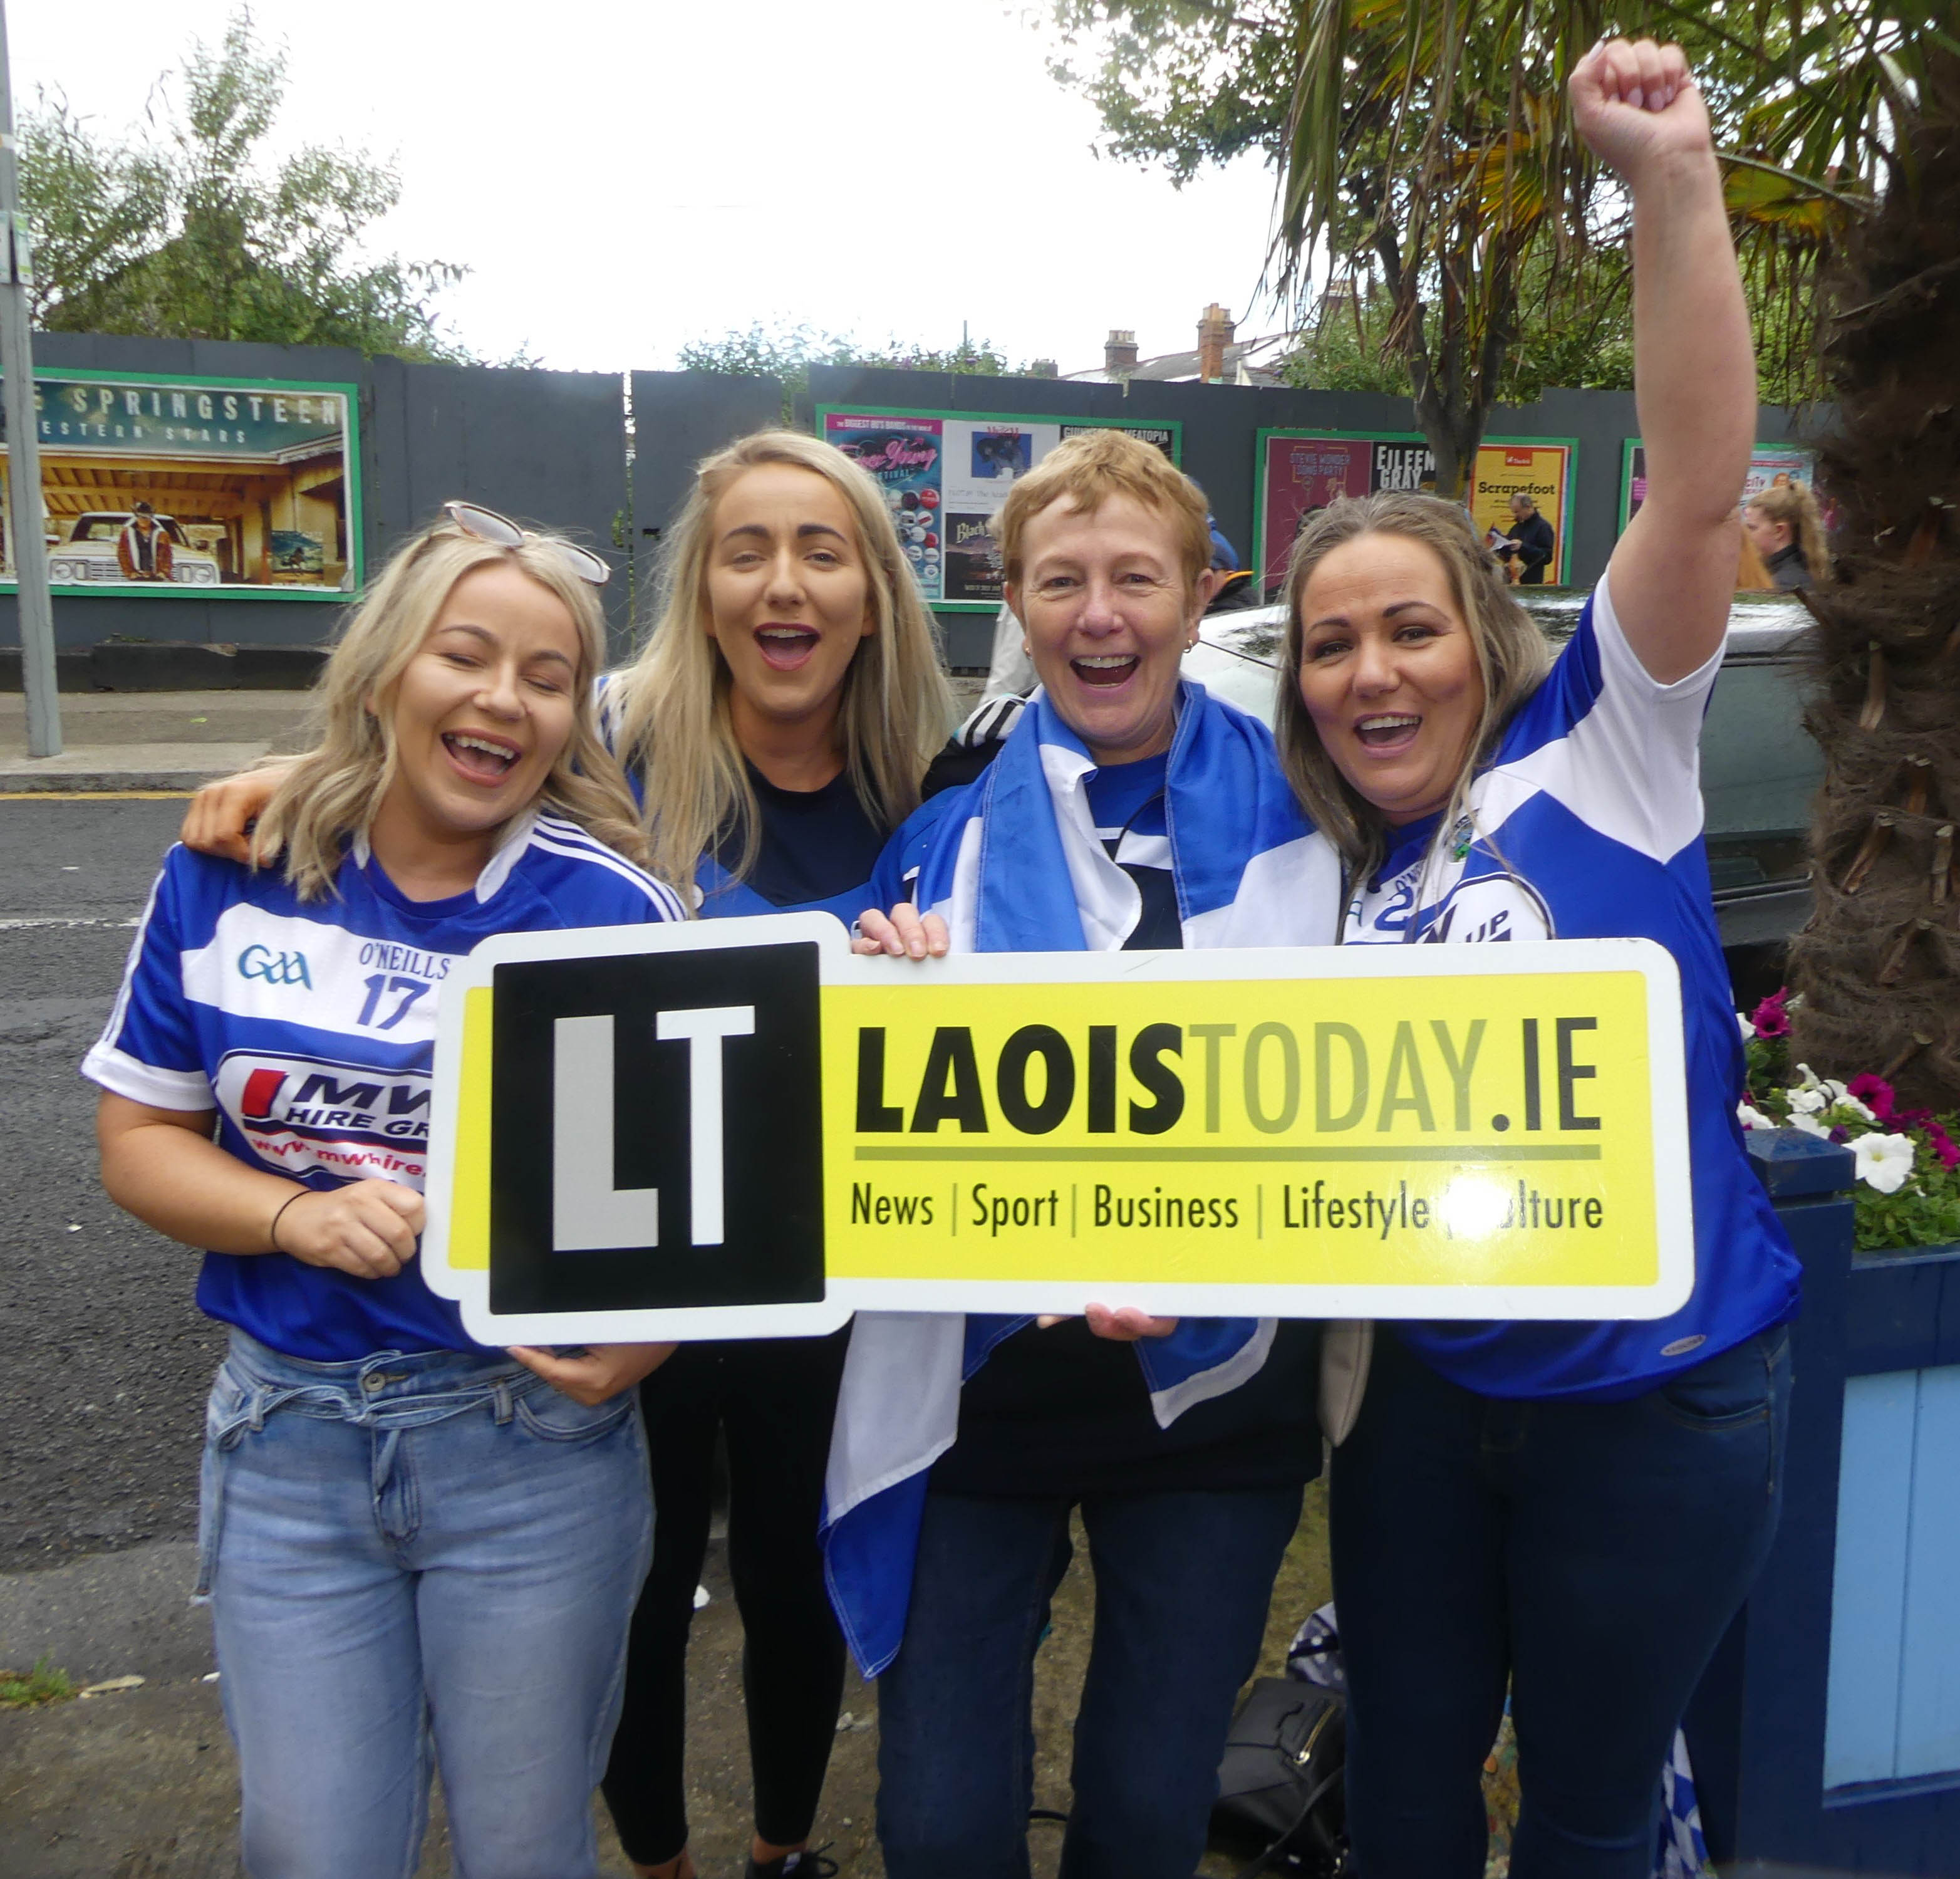 WATCH: Laois man features on BBC dating show - Laois Today